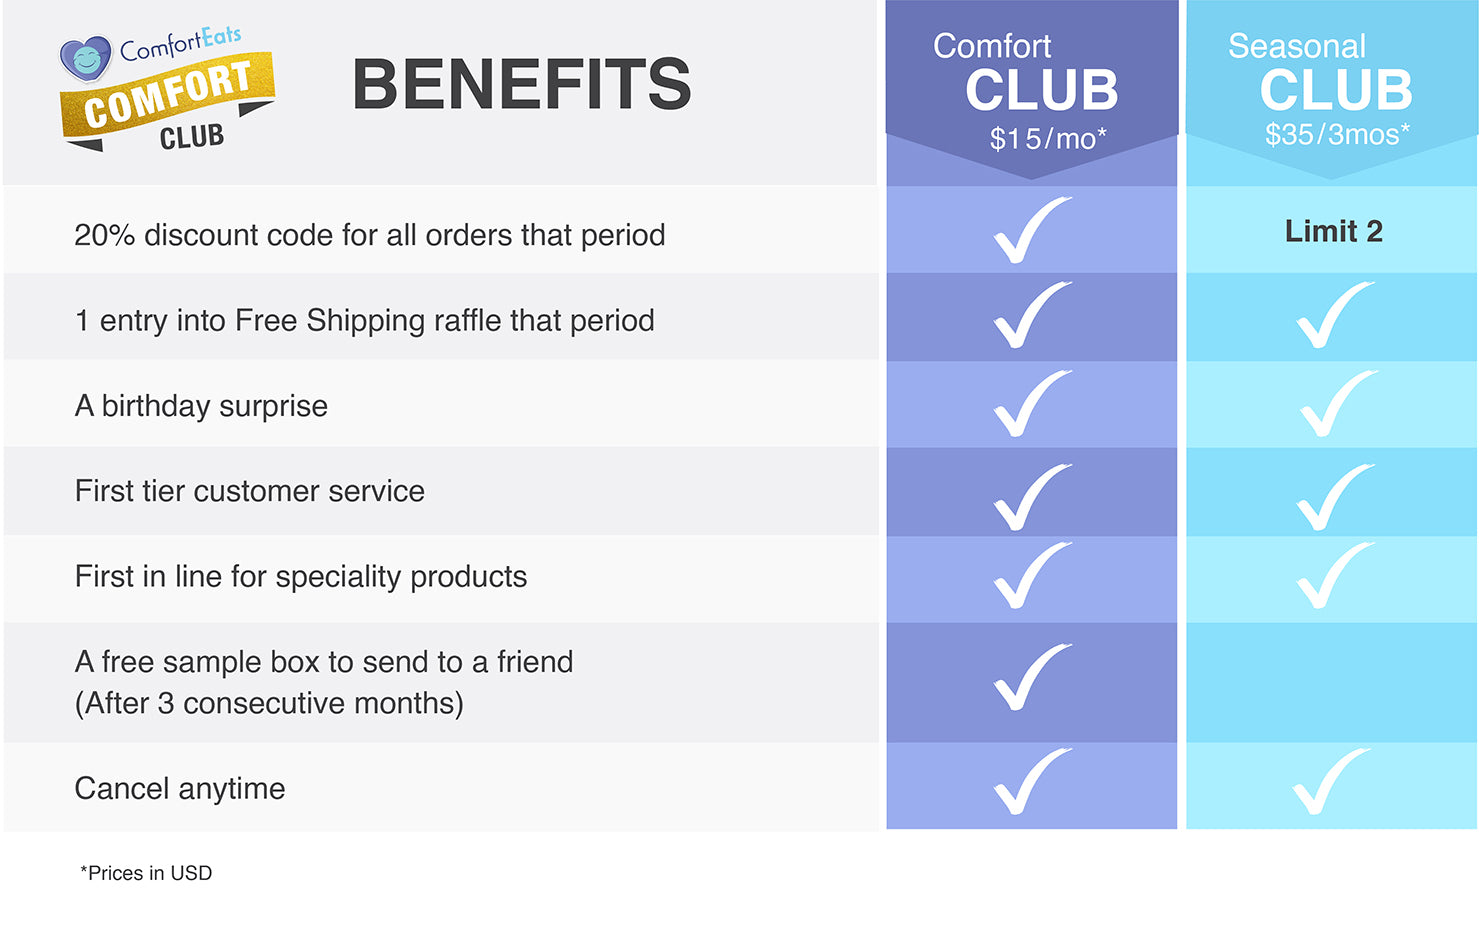 Comfort Eats Membership Club Pricing